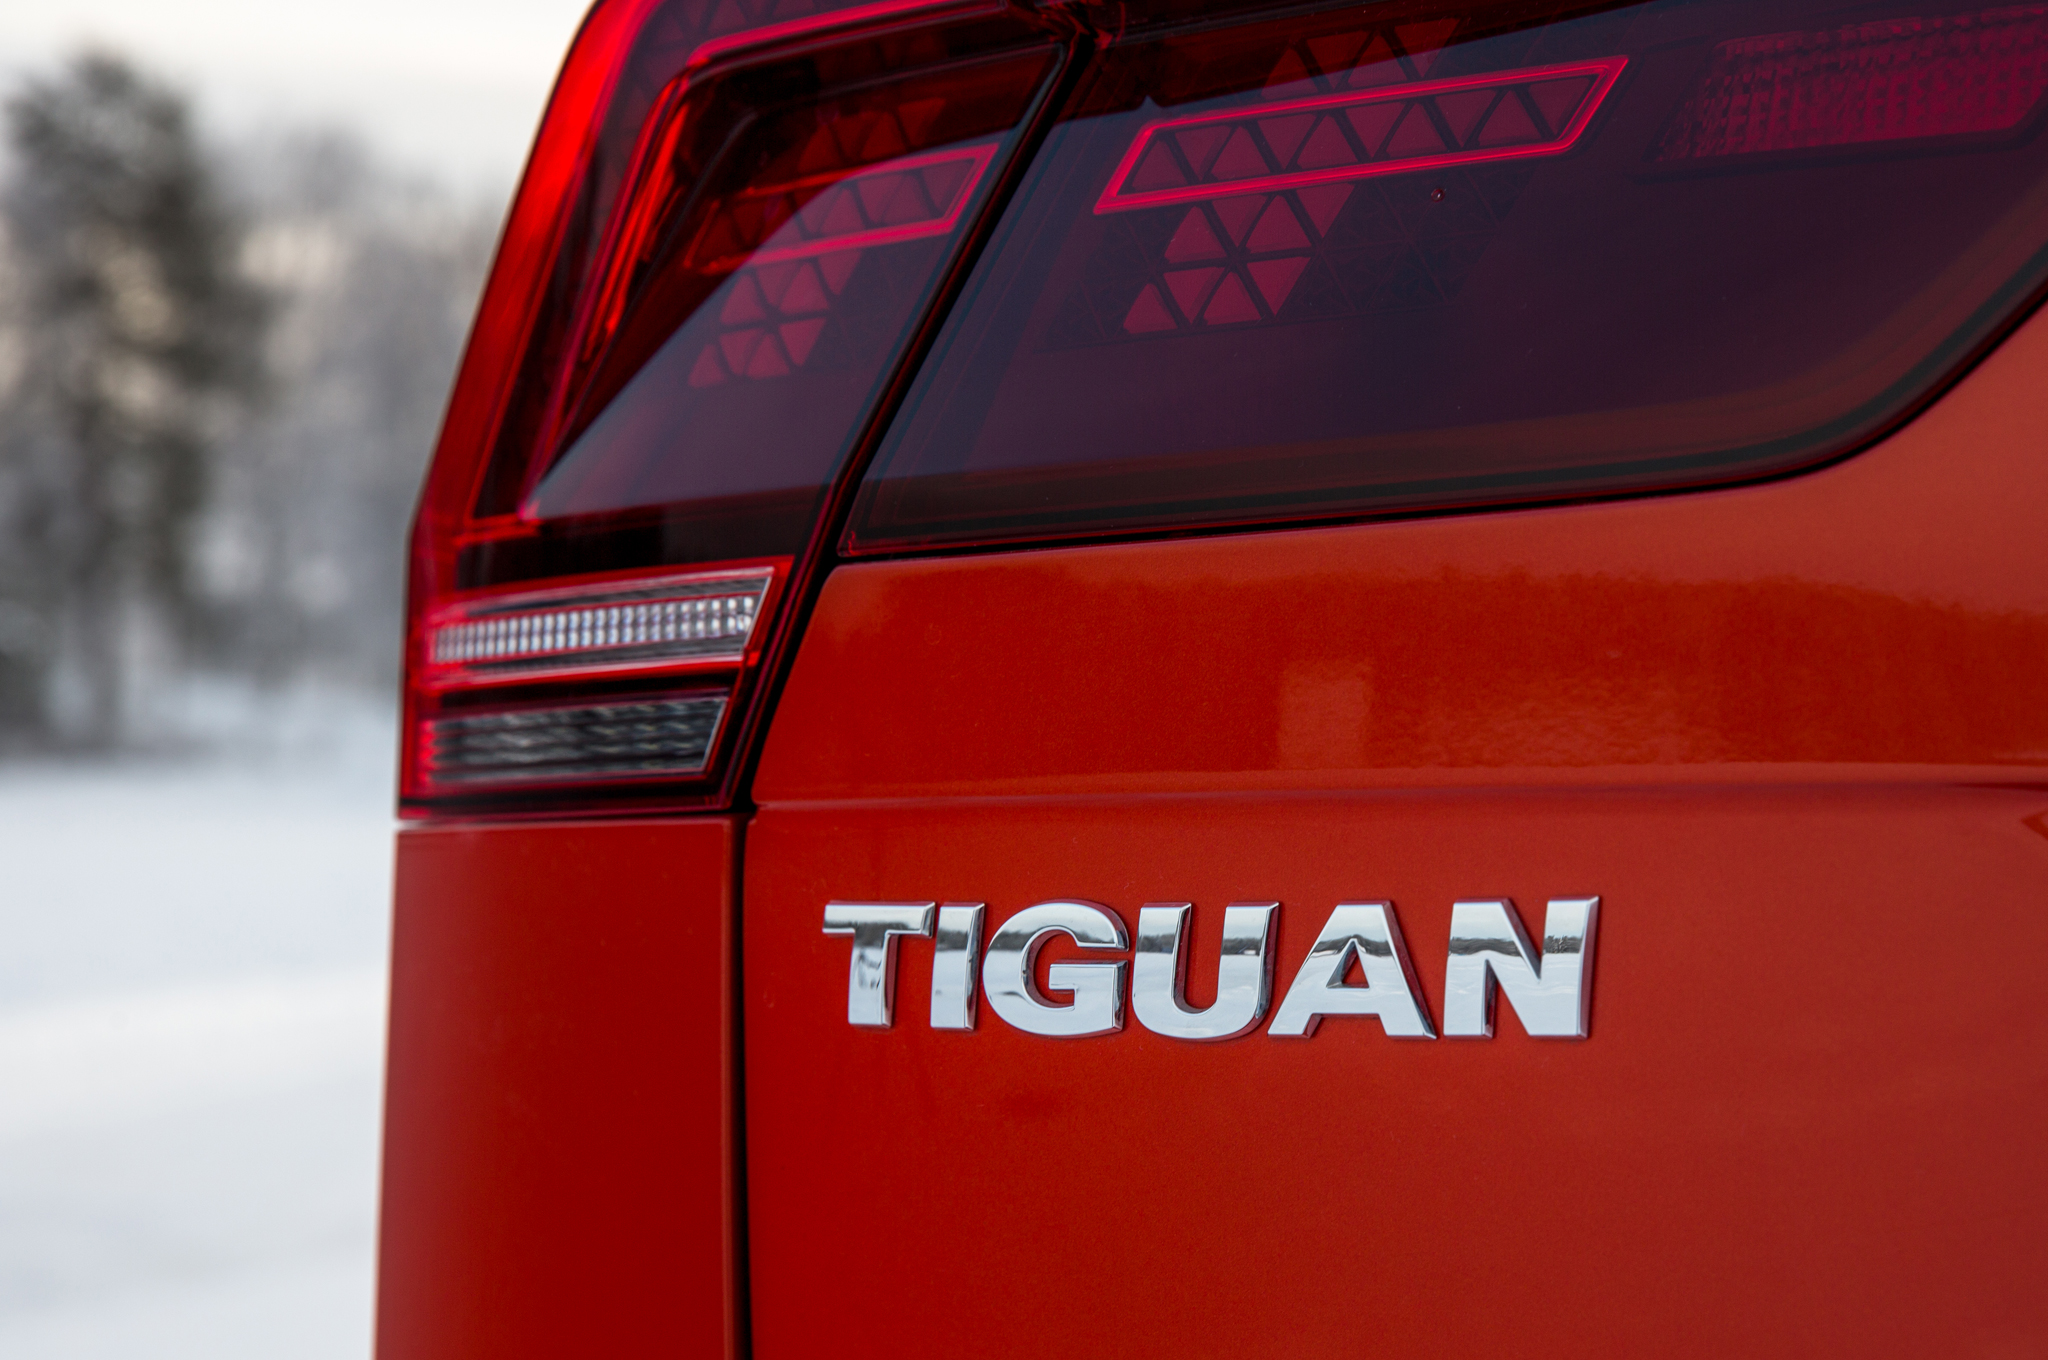 2017 Volkswagen Tiguan Exterior View Rear Emblem (Photo 5 of 27)